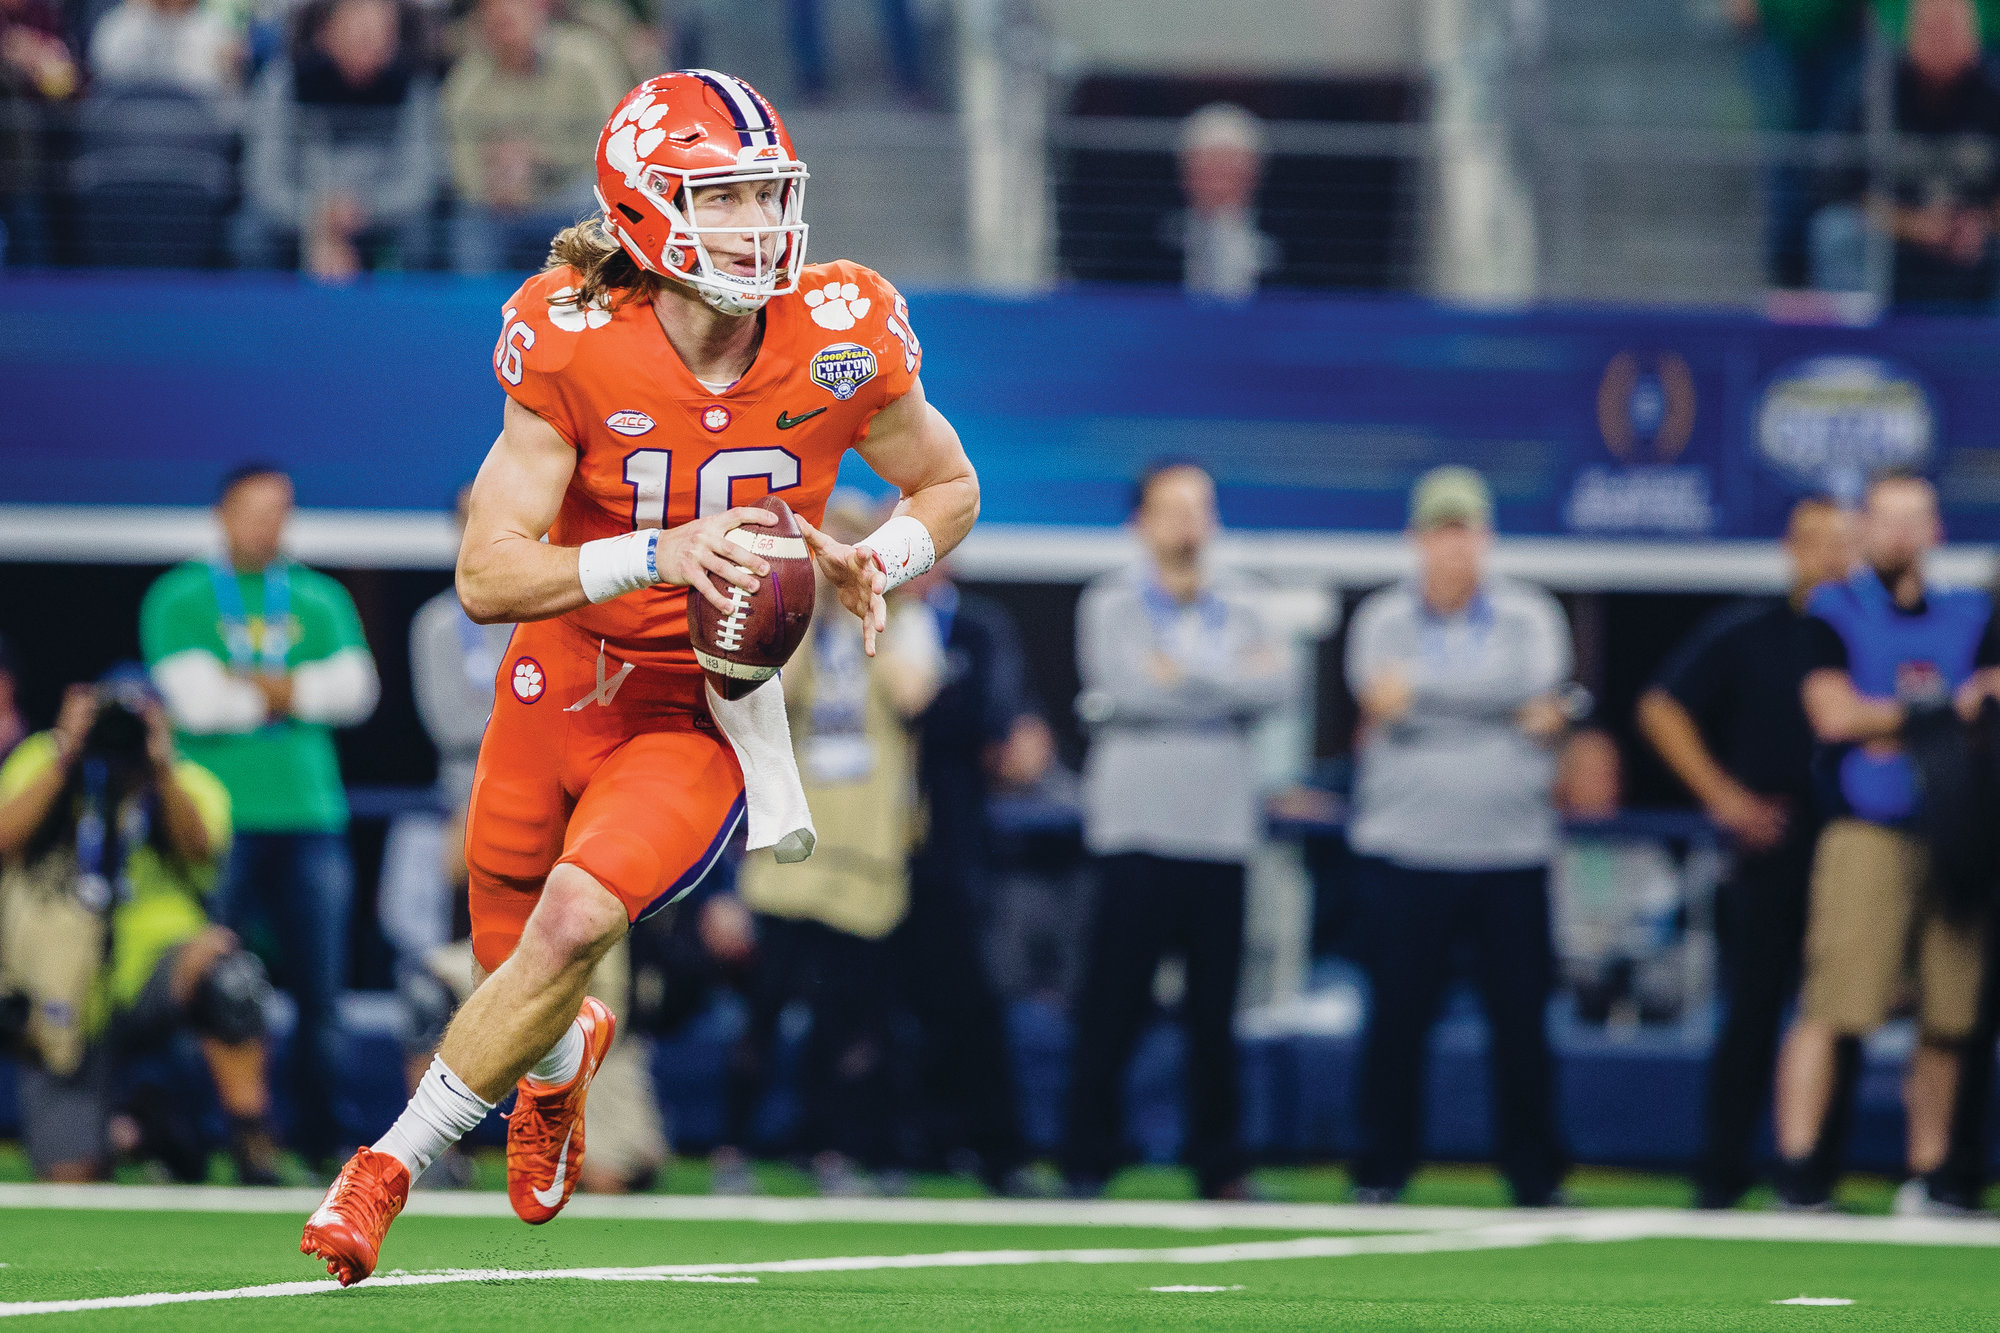 Freshman Clemson quarterback Trevor Lawrence looks for a receiver during the Tigers' 30-3 victory over Notre Dame on Saturday in the Cotton Bowl college football playoff semifinal game in Dallas.